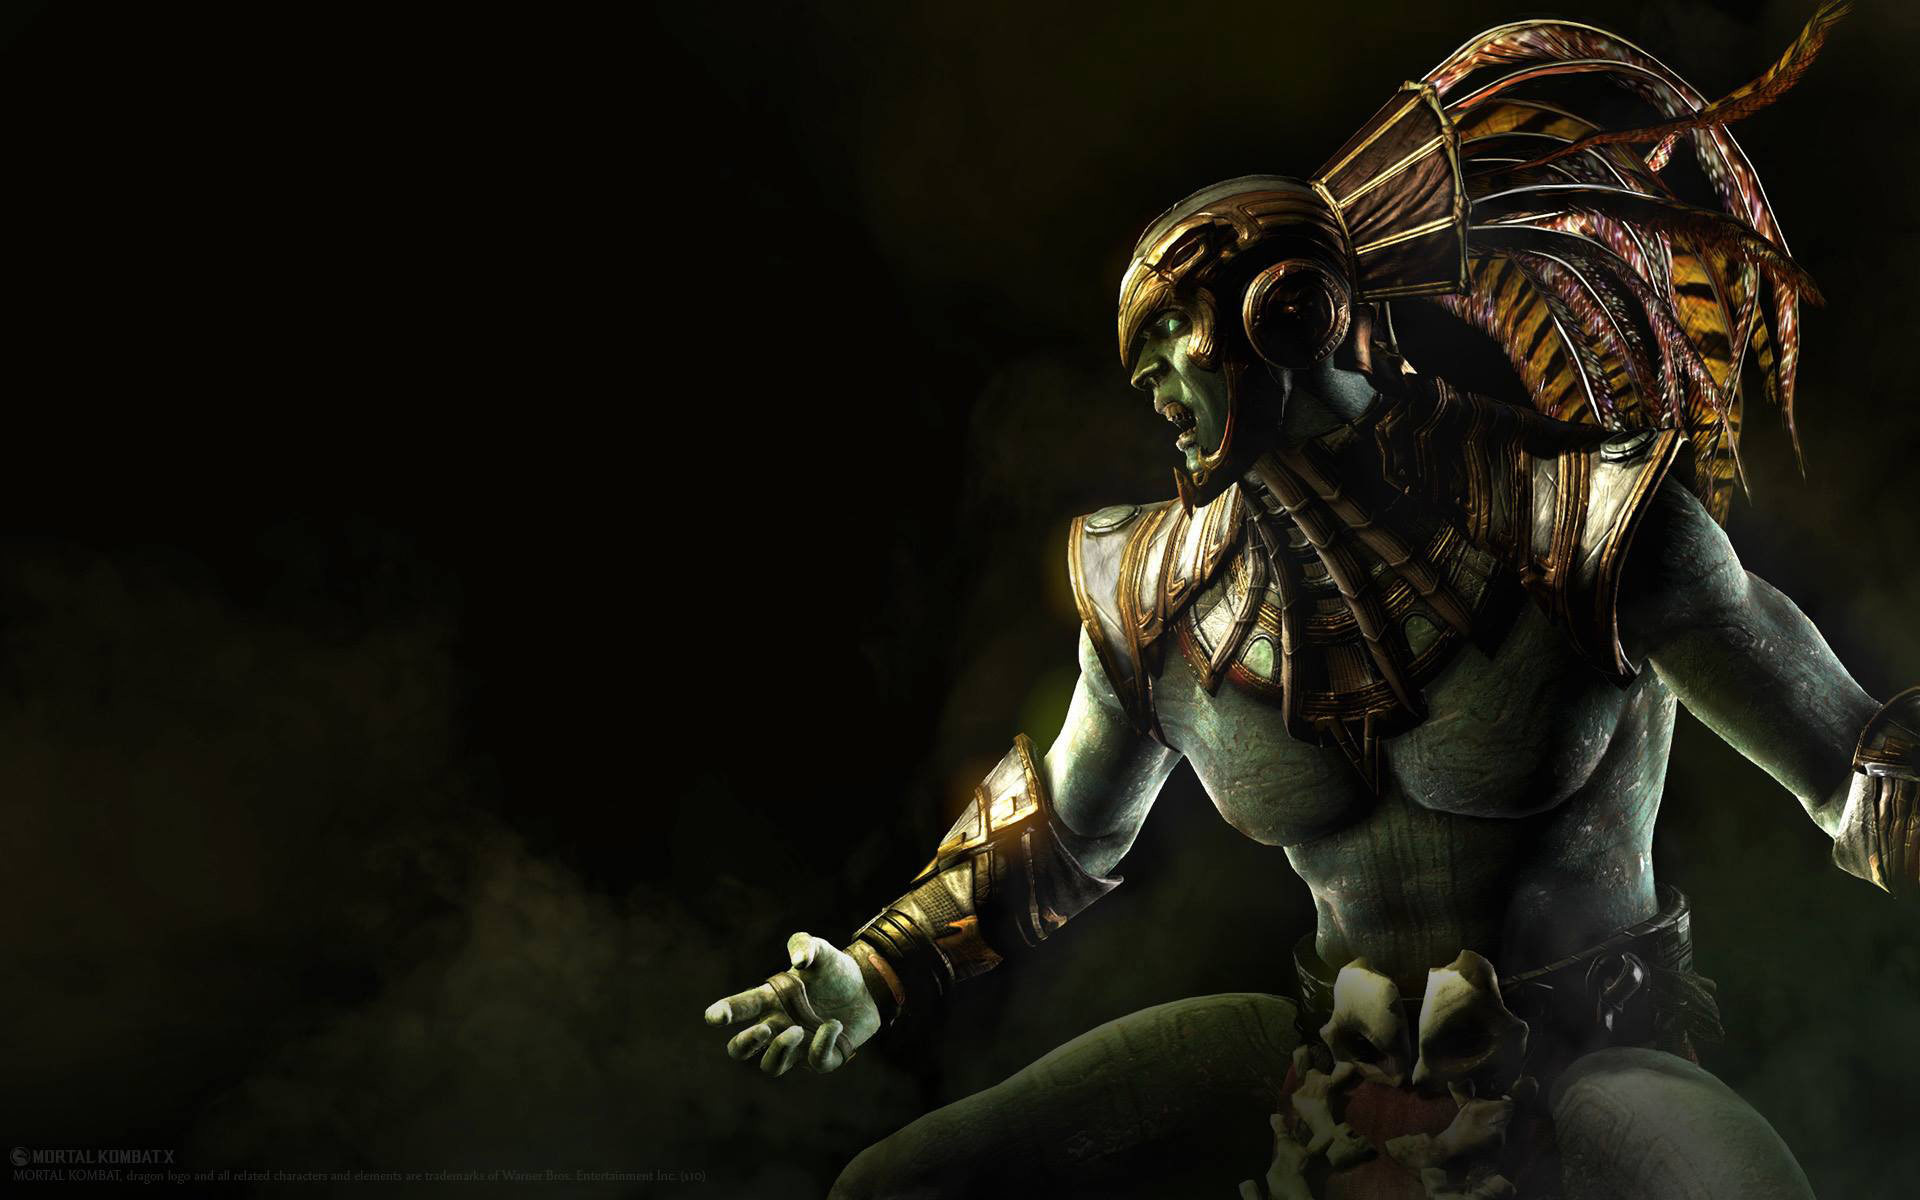 1920x1200 Mortal Kombat X HD Wallpaper HD 4 - 1920 X 1200